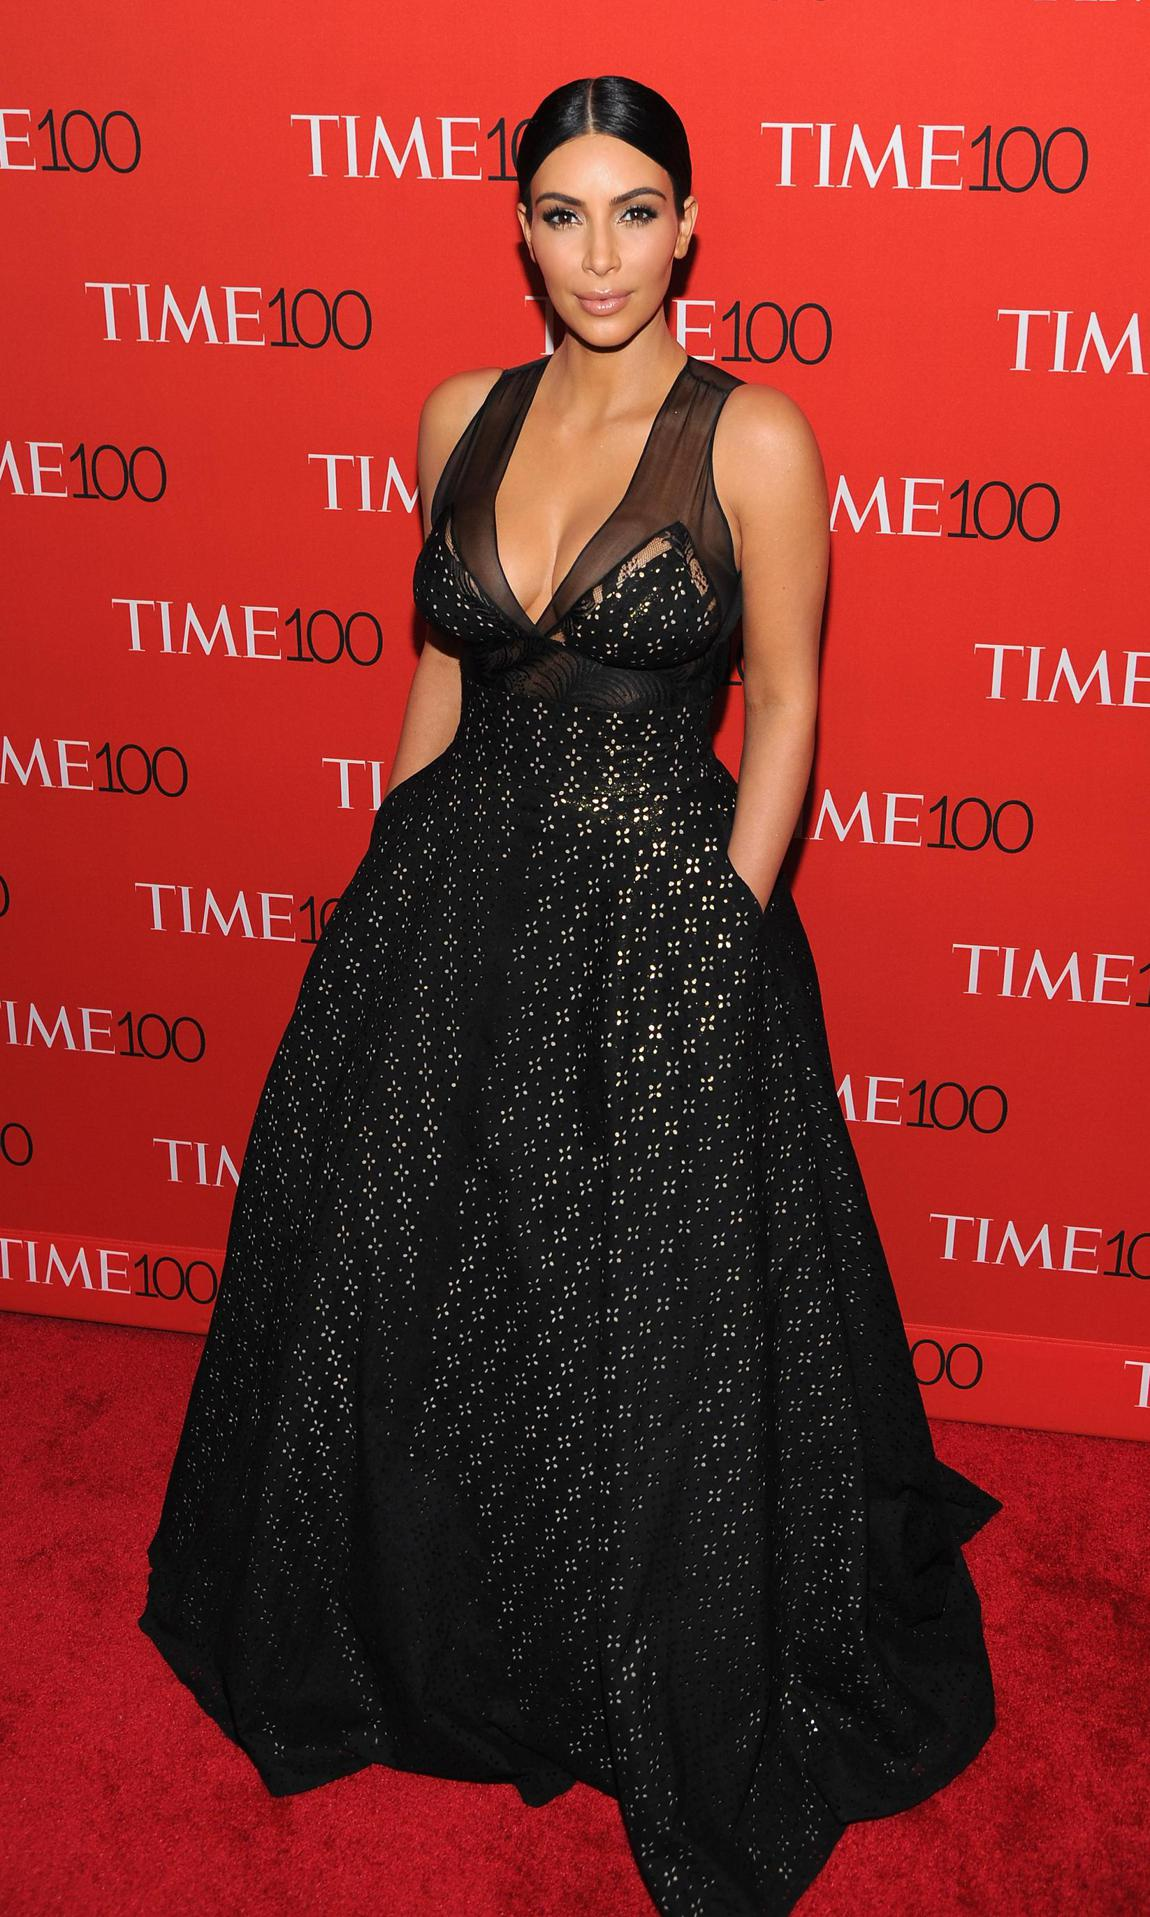 Kim Kardashian in a black and silver dress by Sophie Theallet